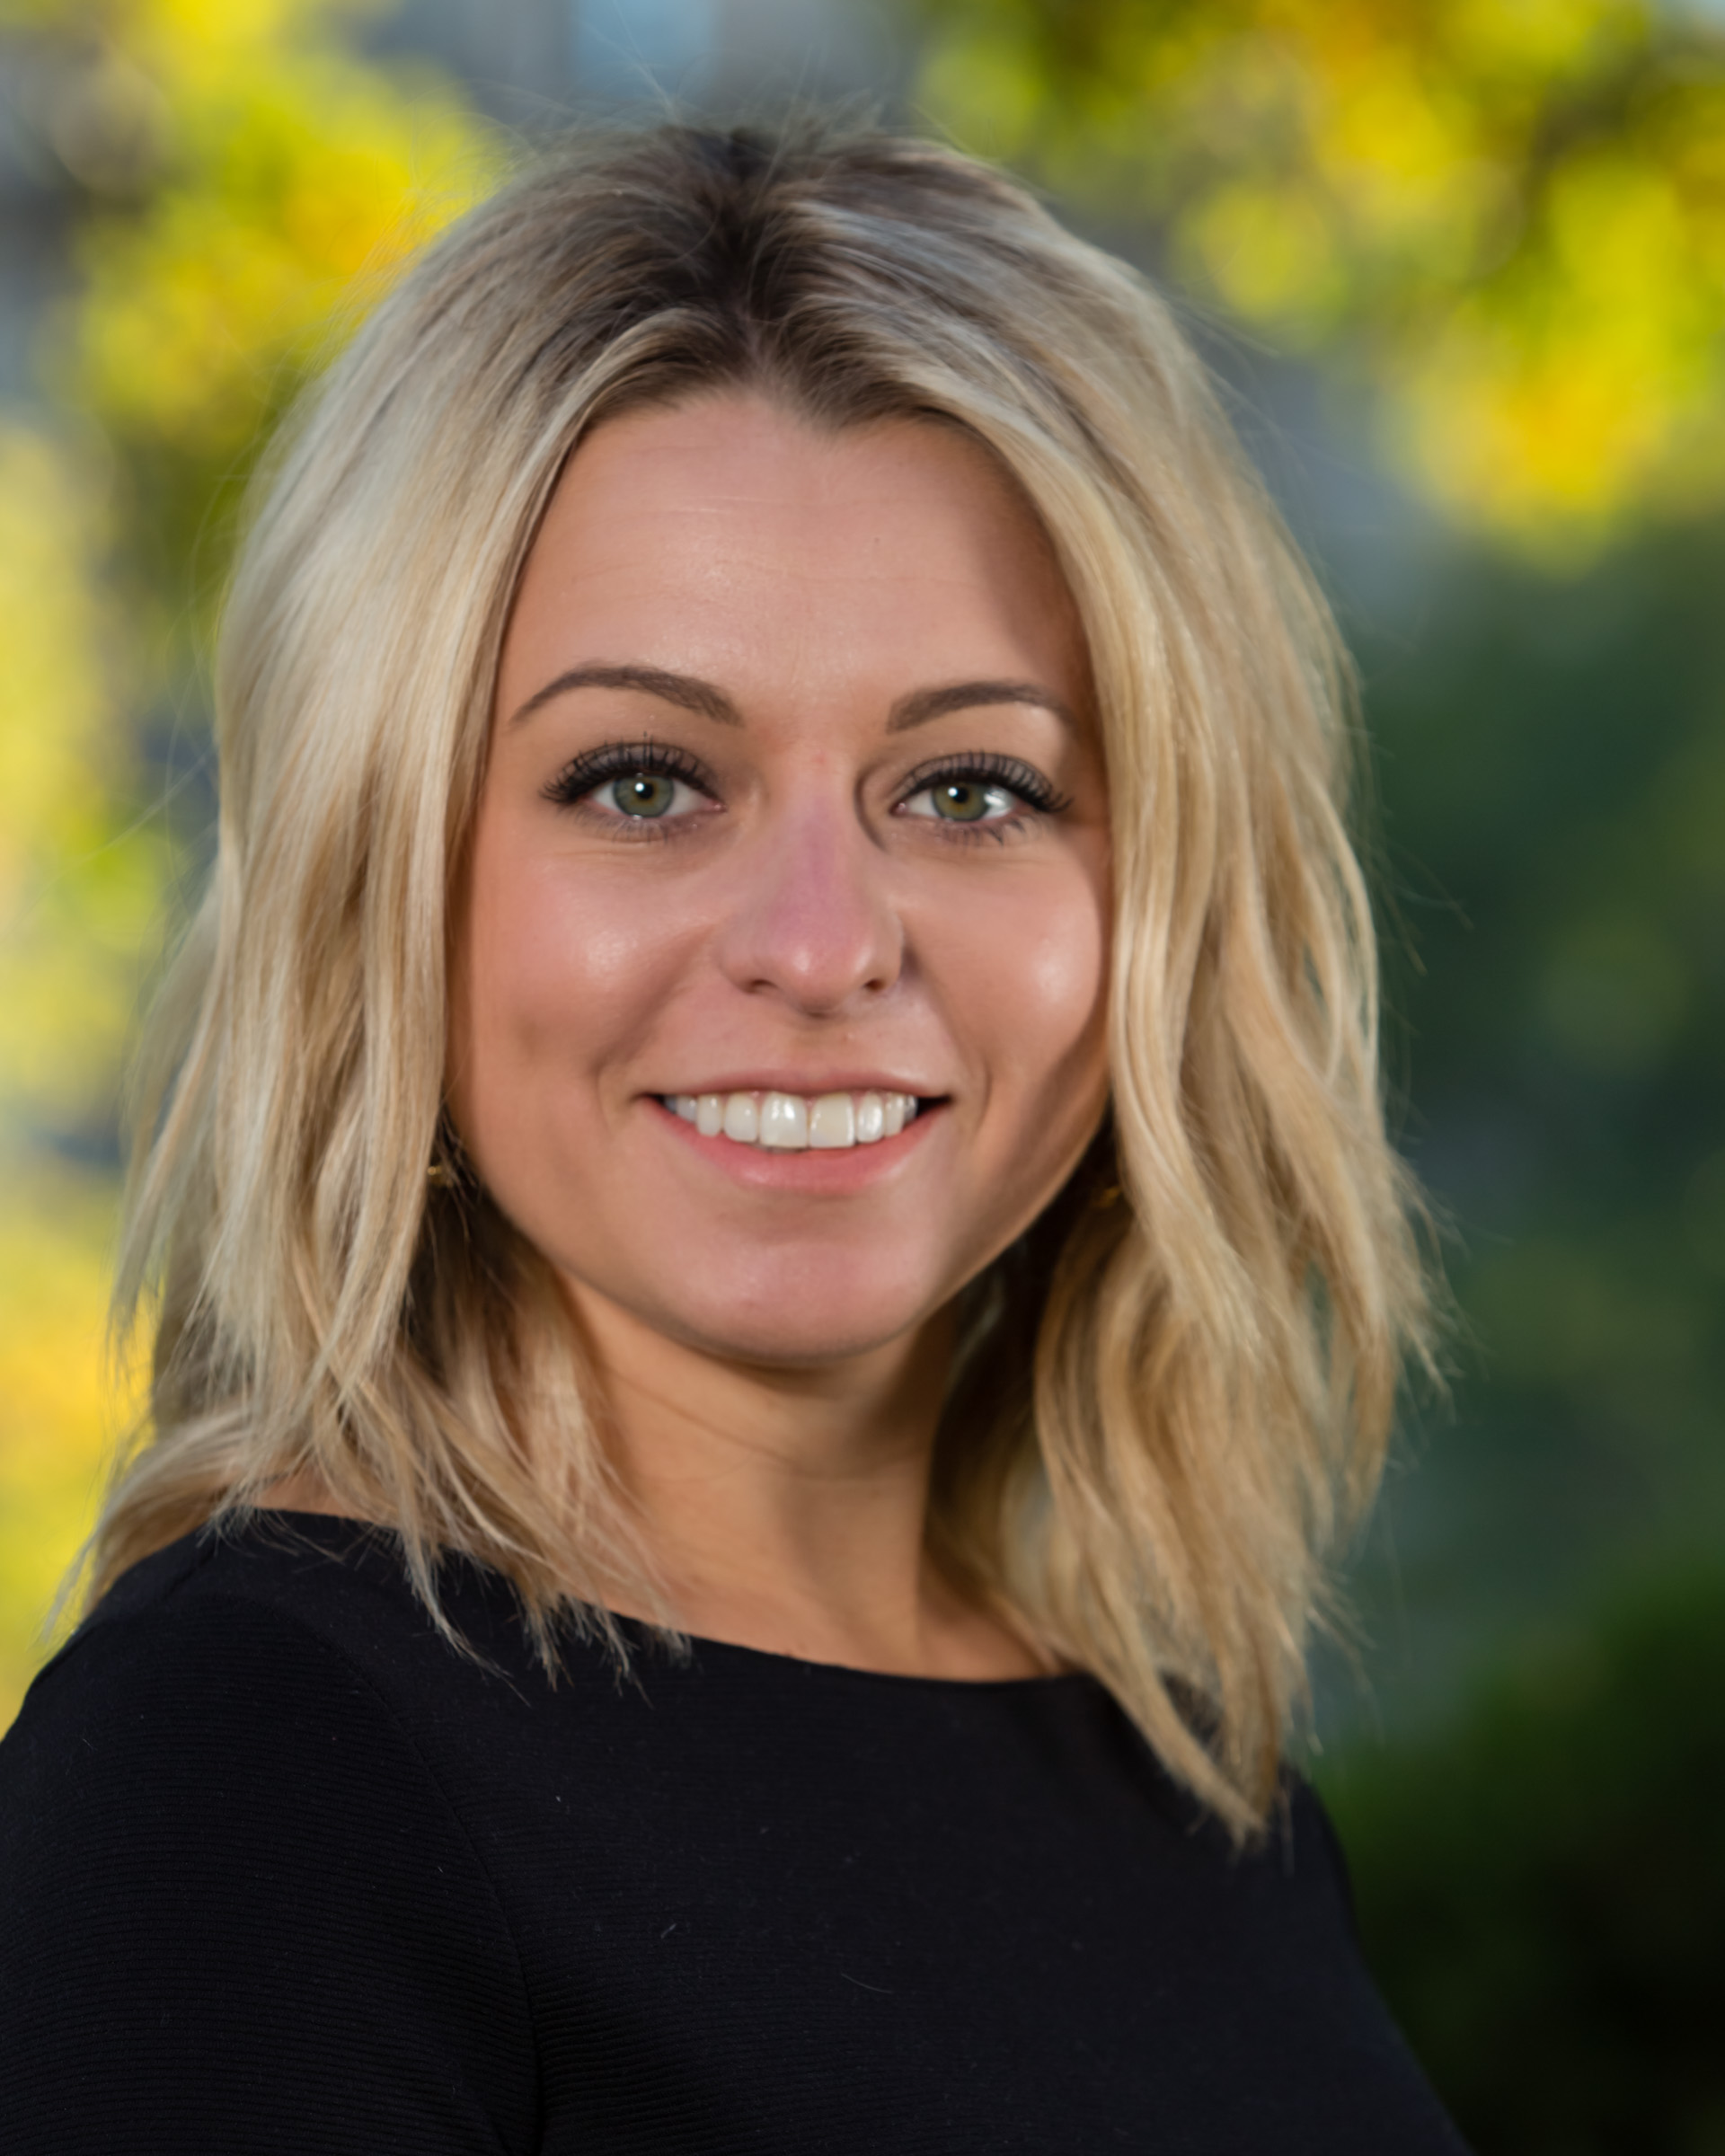 ALIX HILTON, OUTREACH AND COMPETITION COORDINATOR